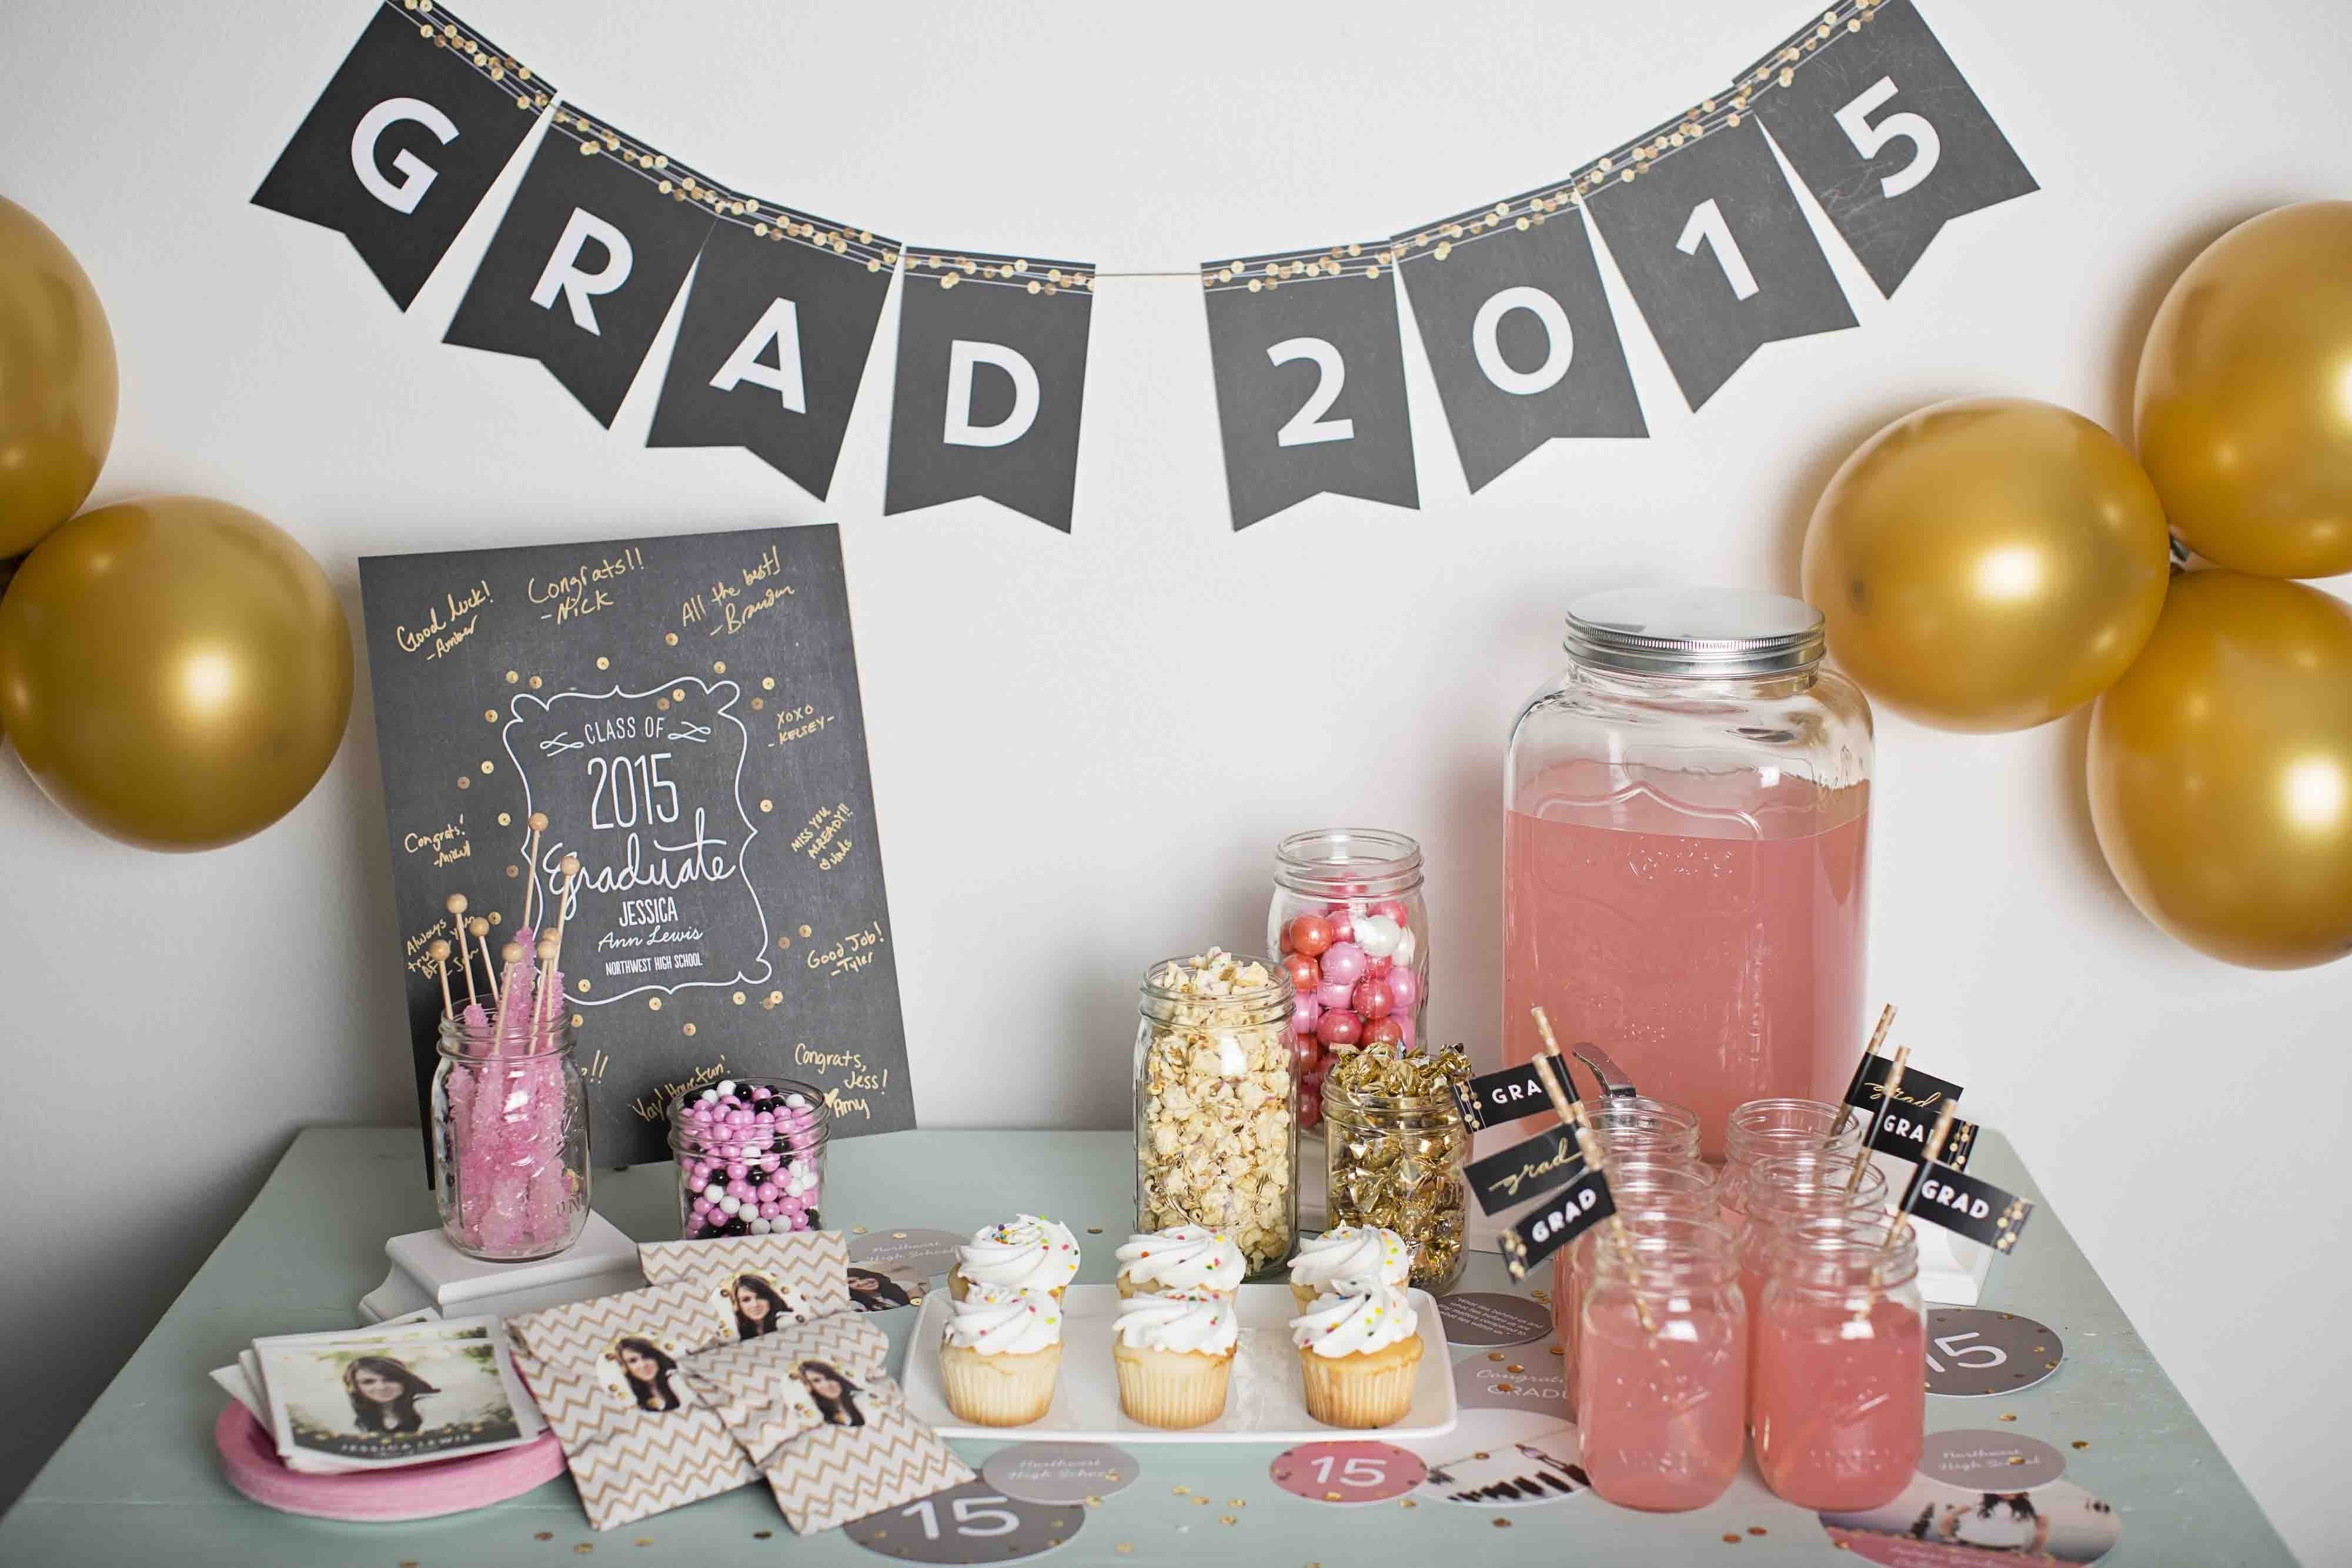 10 Lovable Fun Ideas For Graduation Parties sequin inspired graduation party ideas pear tree blog 1 2020